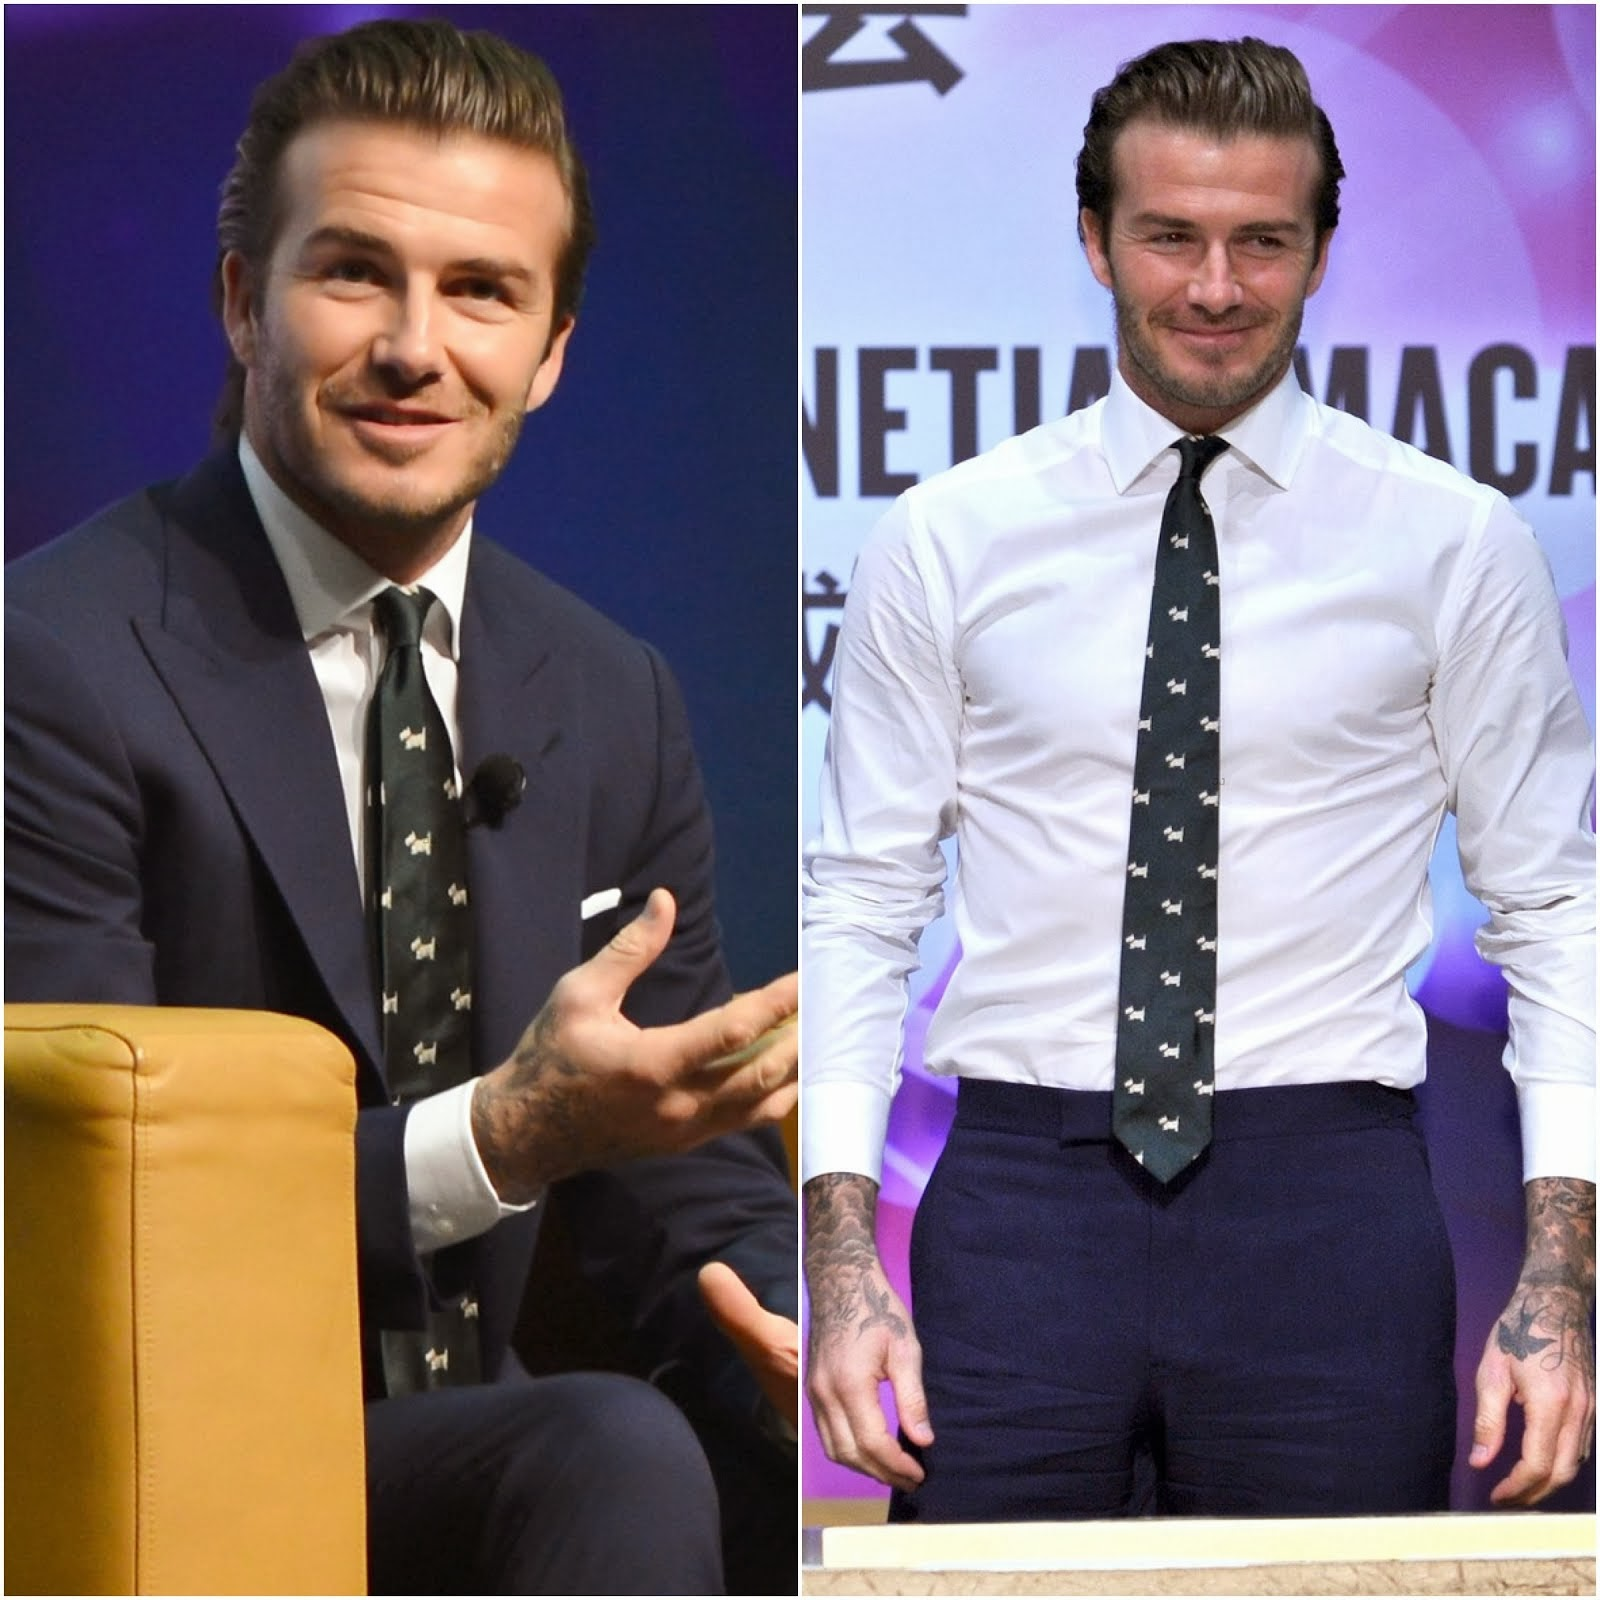 David Beckham's Polo Ralph Lauren Scottie dog necktie - Macau Handprint Ceremony November 2013